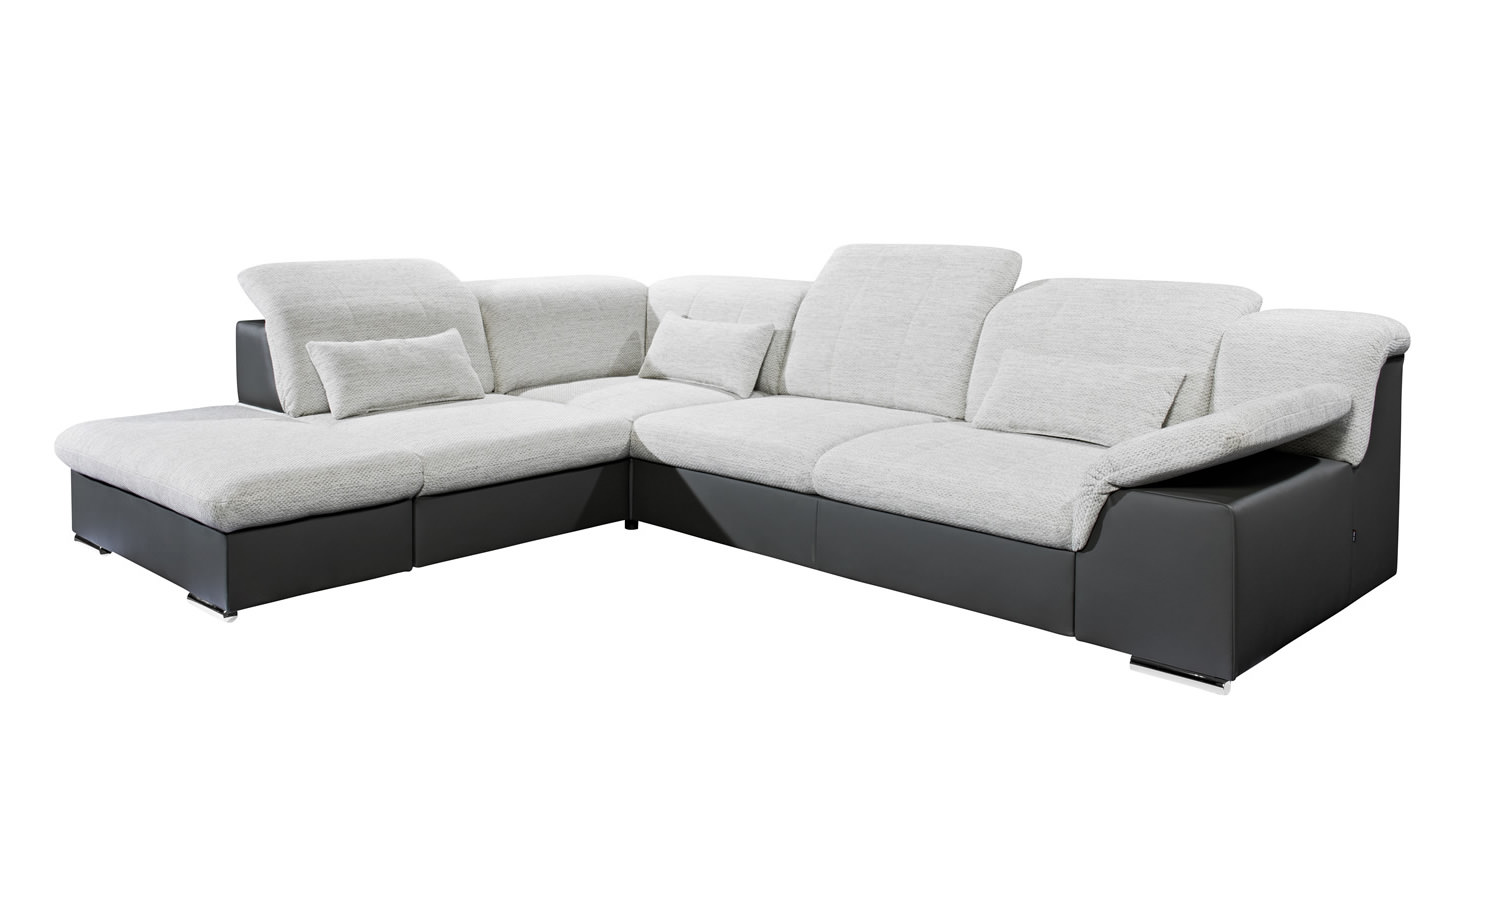 Ecksofa Move1 Blackredwhite Ecksofa Xl Move Links Mit Schlaffunktion